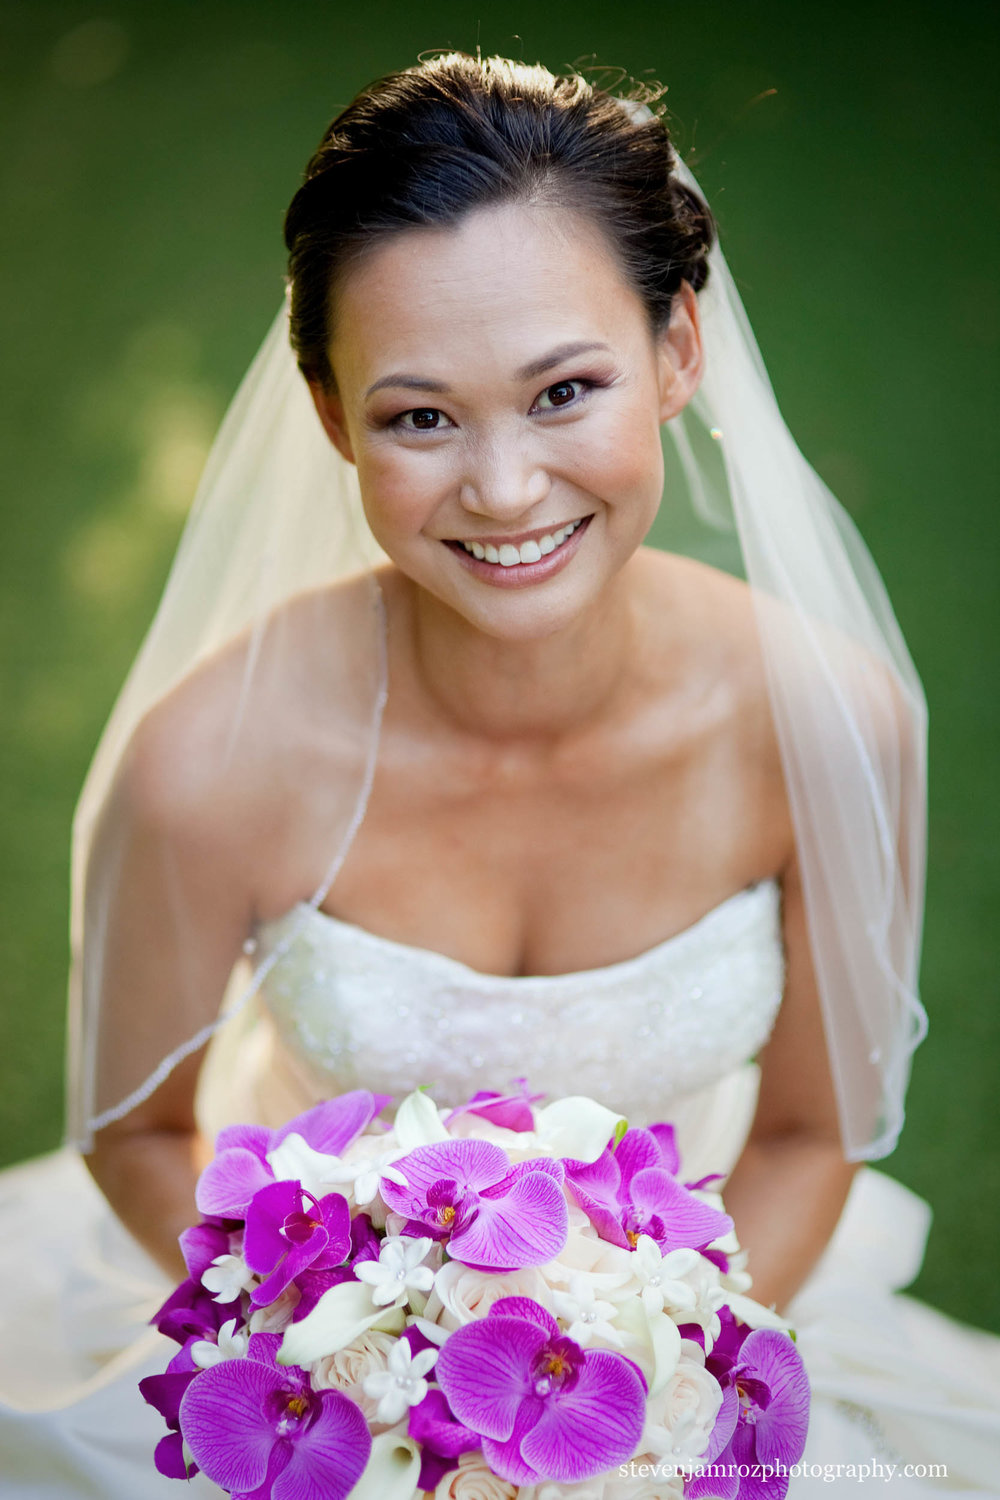 gorgeous-bridal-portrait-chapel-hill-steven-jamroz-photography-0526.jpg